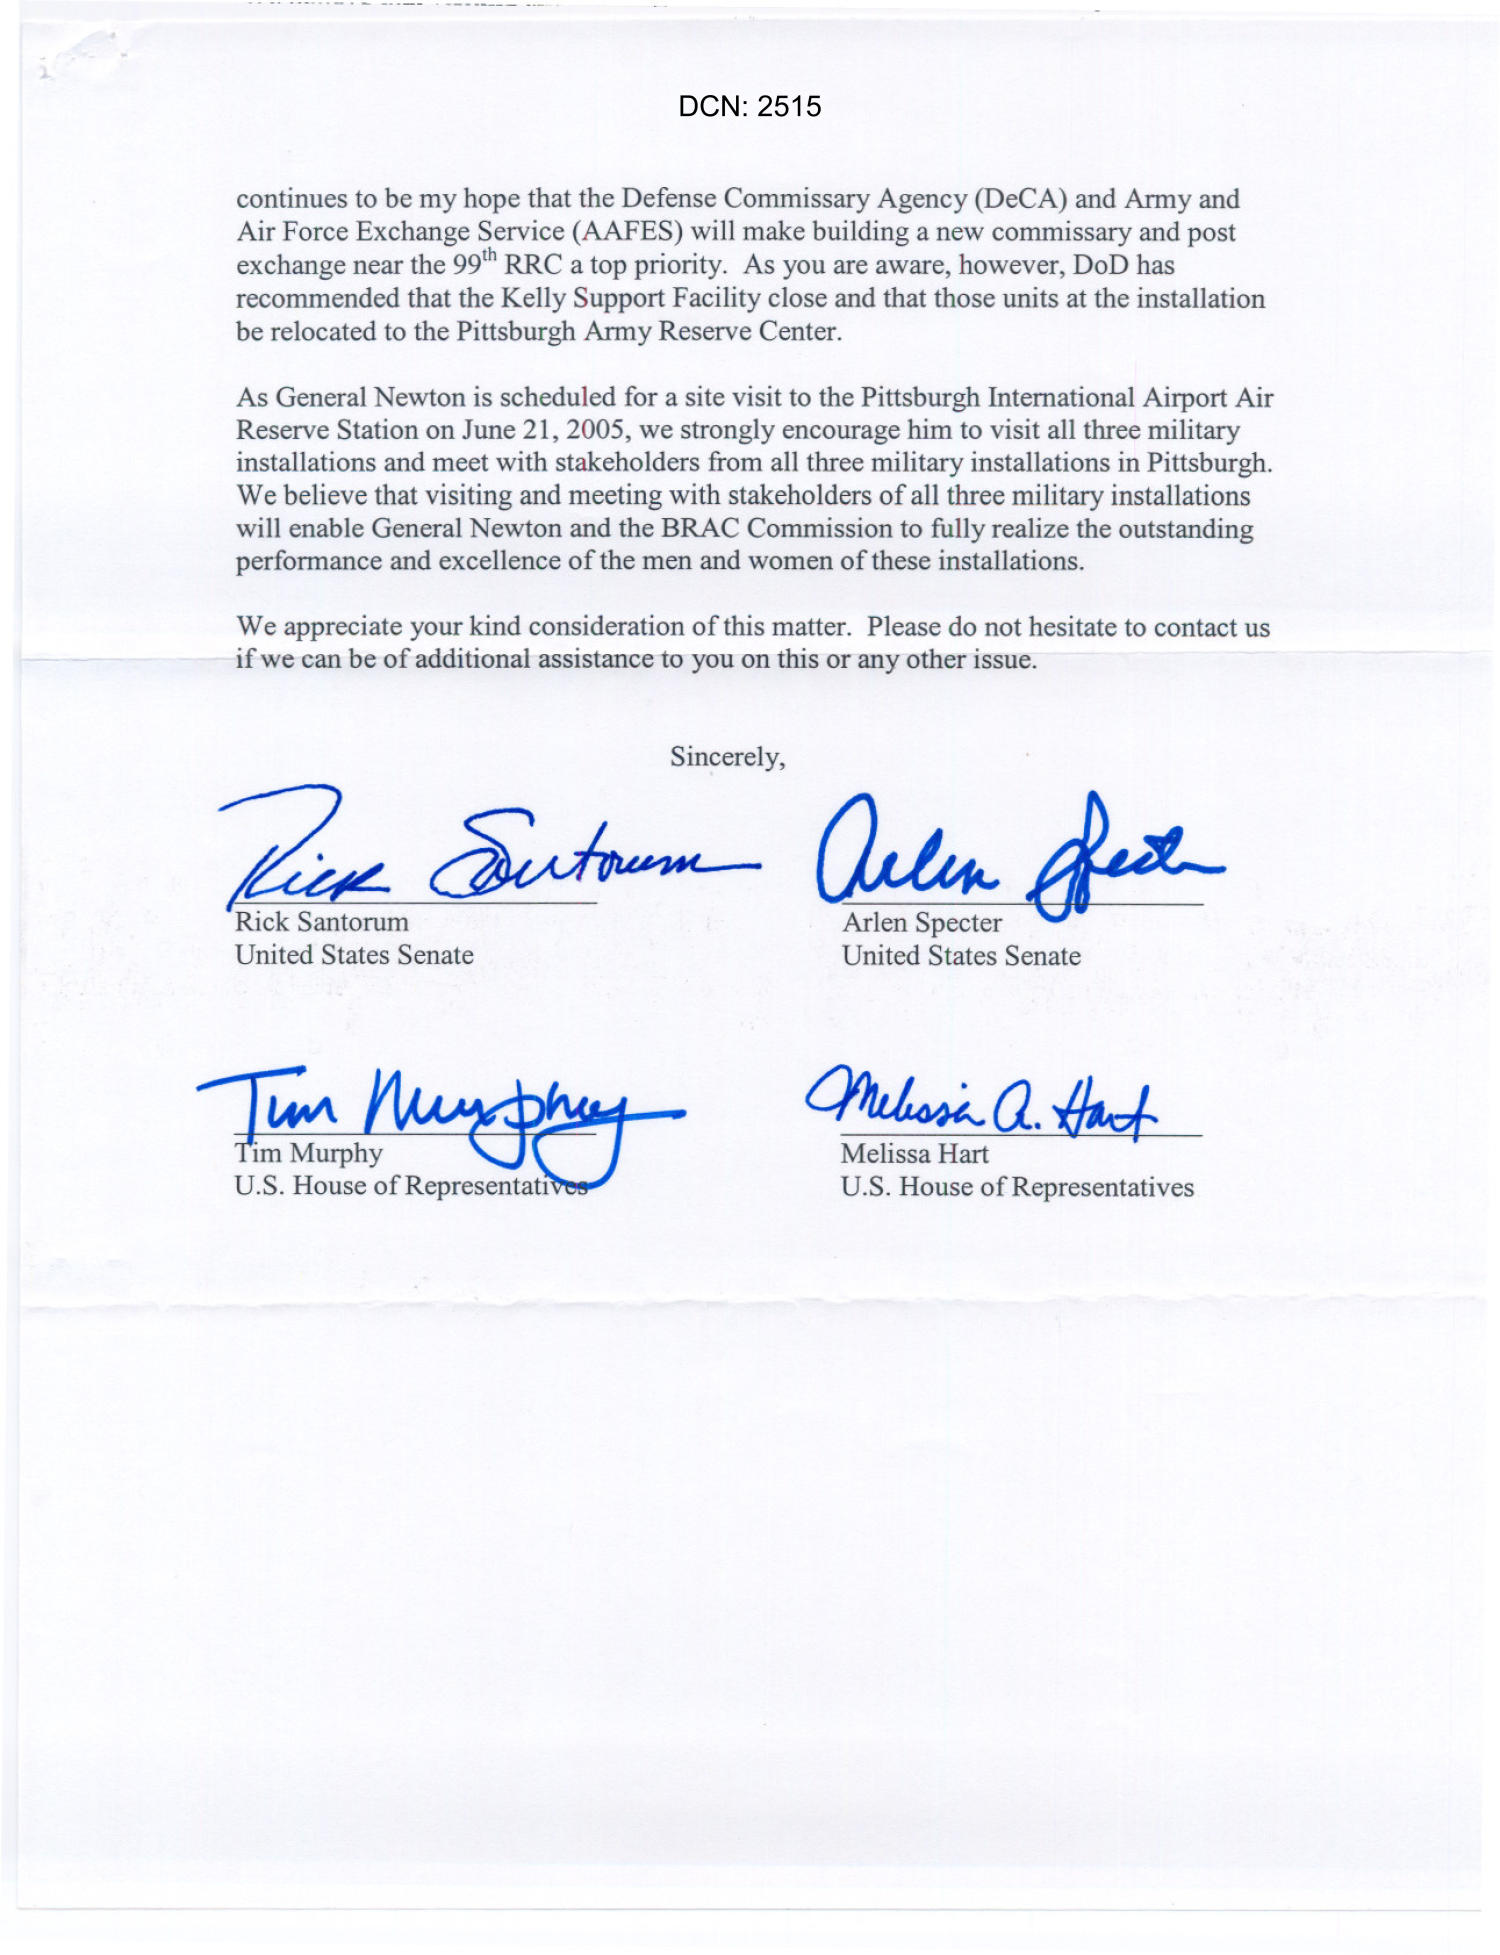 Letter from Pennsylvania Senators Rick Santorum and Arlen Specter and Reps Tim Murphy and Melissa Hart dtd 13JUN05                                                                                                      [Sequence #]: 2 of 2